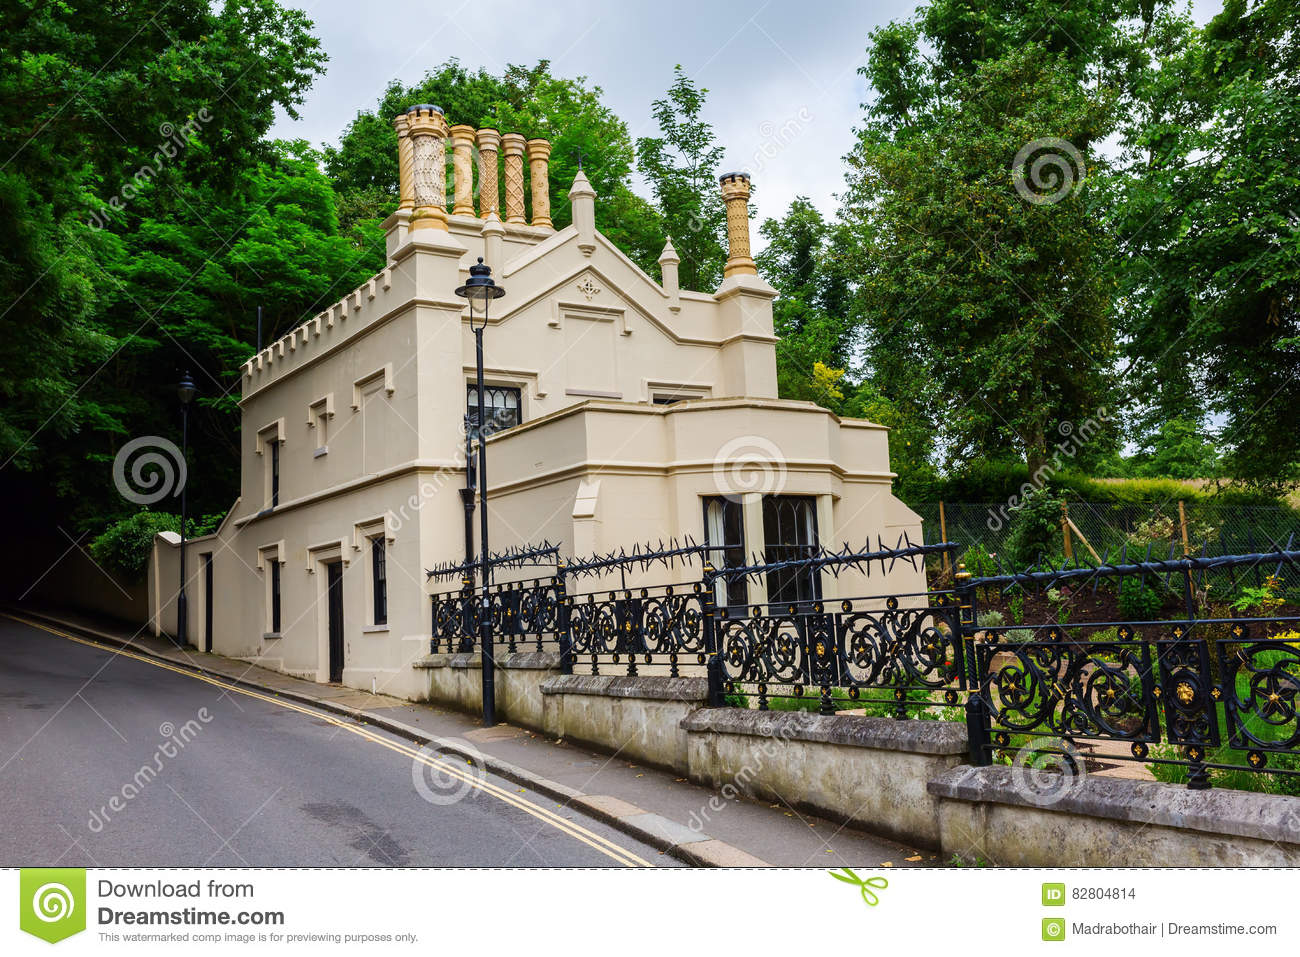 Old building at Highgate Cemetery in London